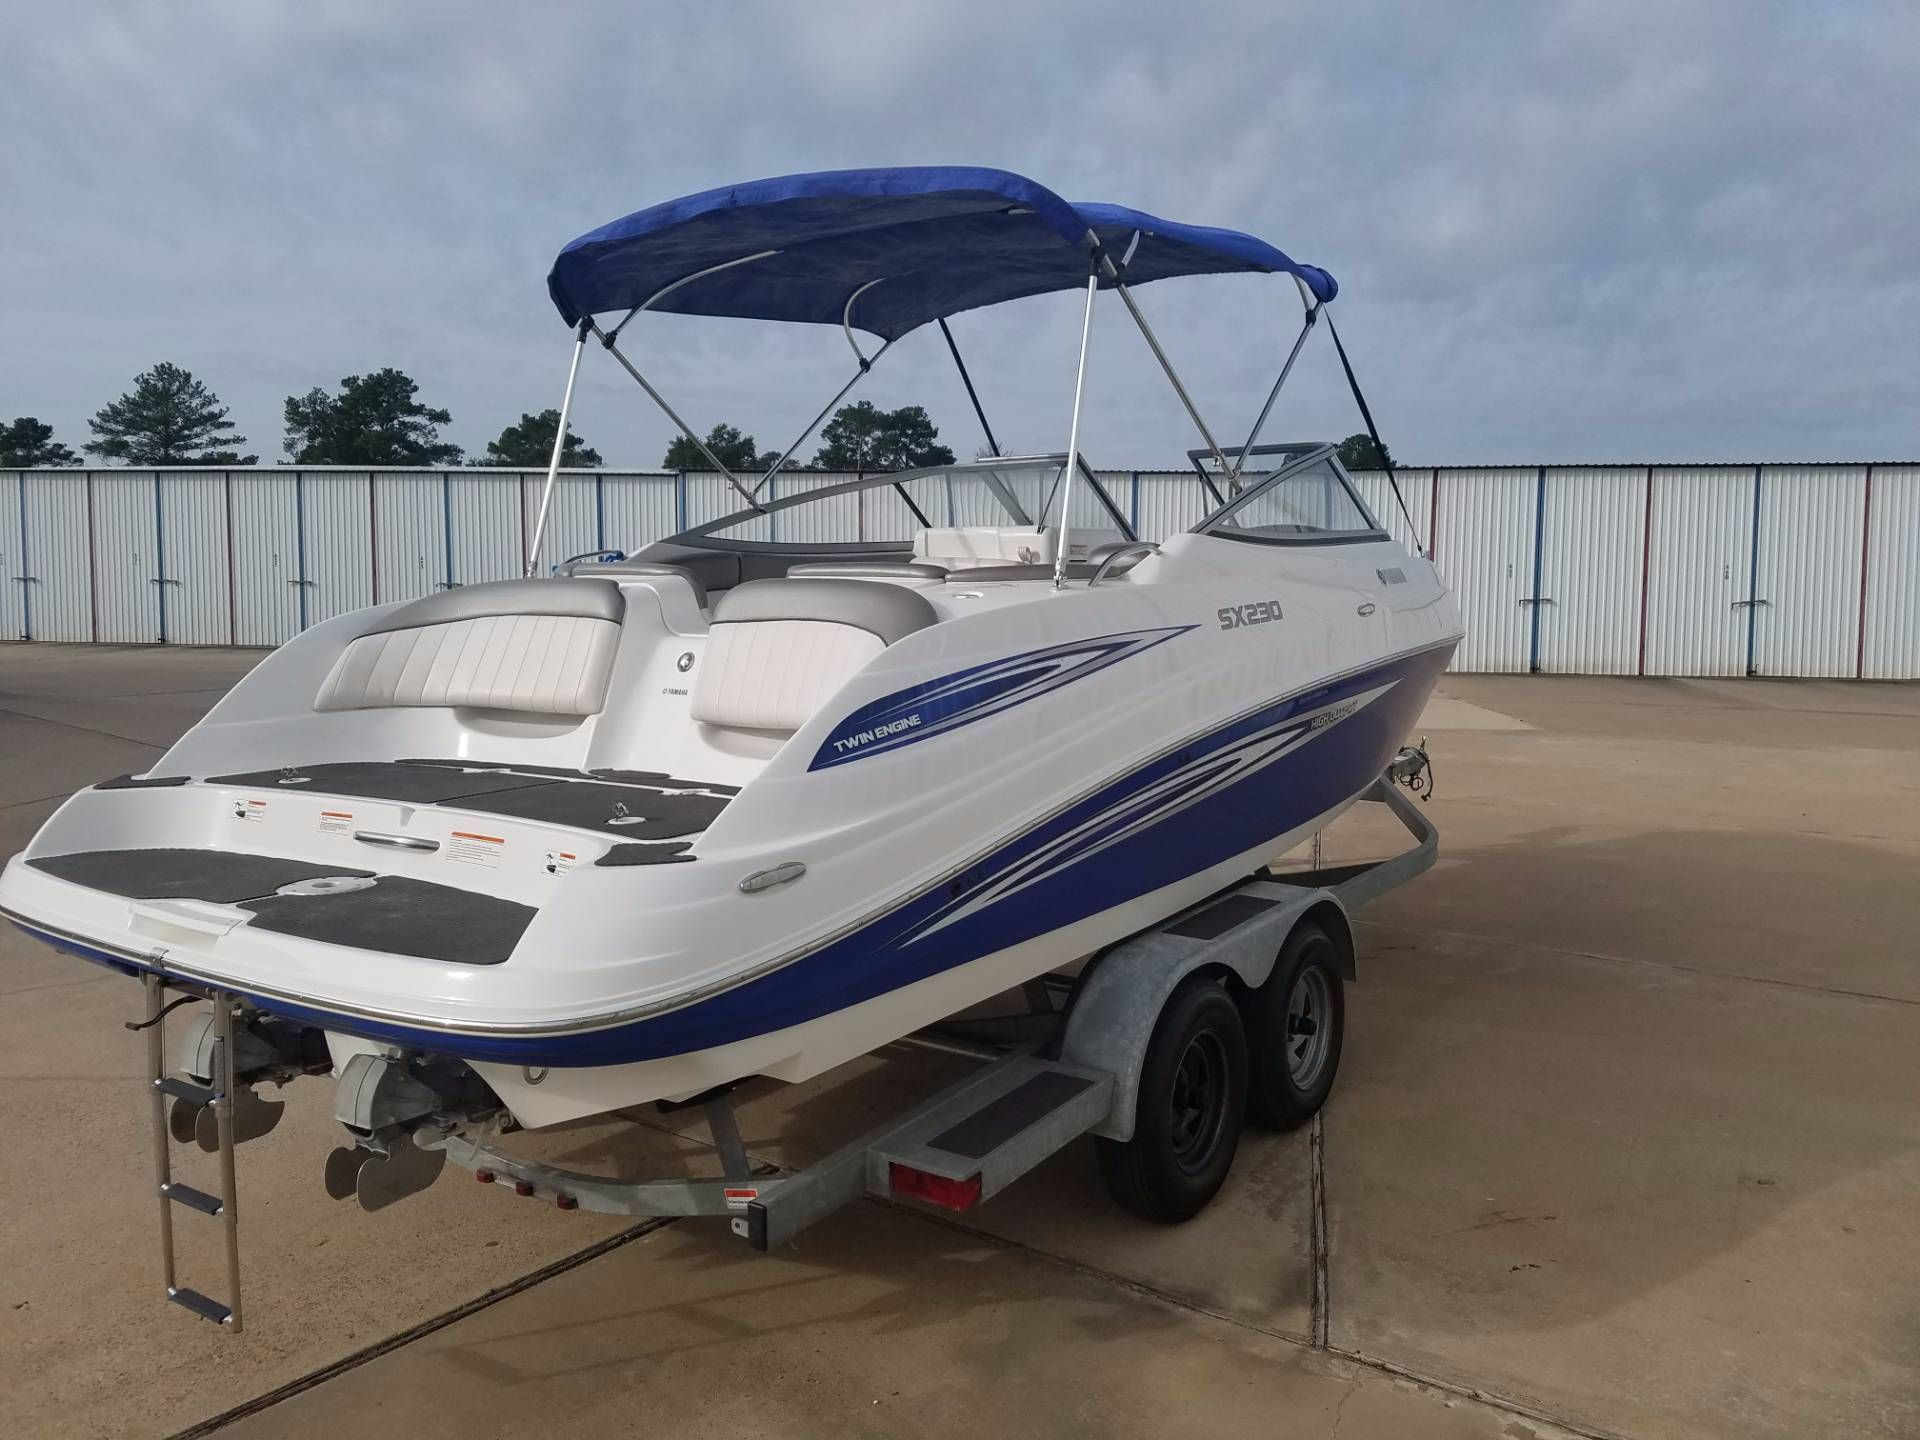 Yamaha Sx230 Ho For Sale In Willis Texas View Pictures And Details Of This Boat Or Search For More Yamaha Bo Yamaha Boats For Sale Yamaha Boats Boats For Sale